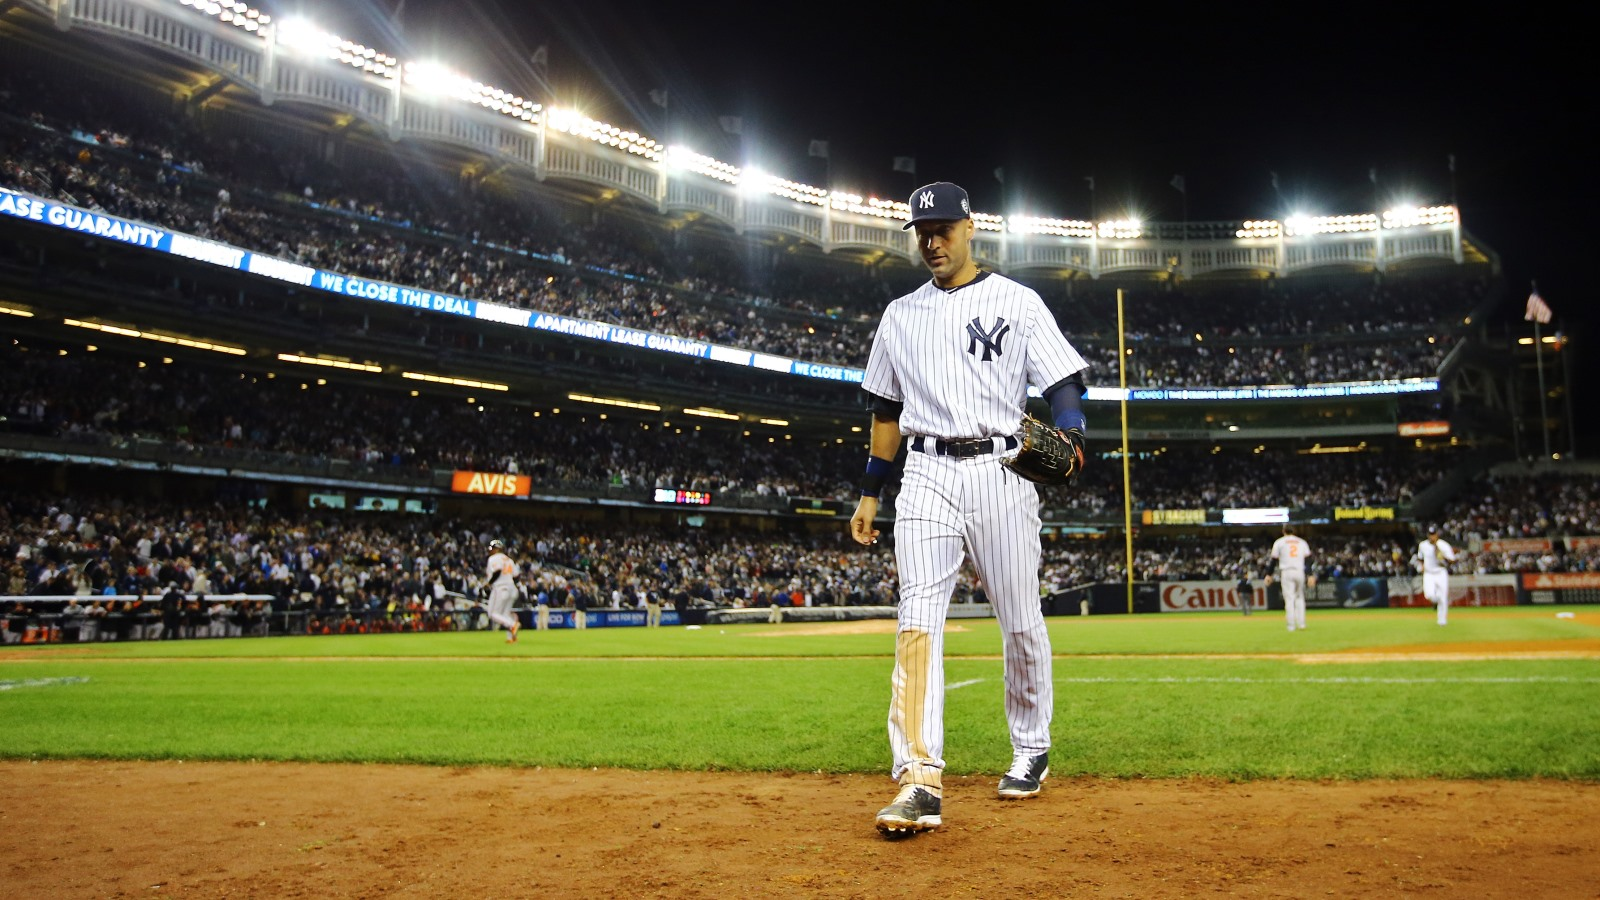 Two sources have informed The News' Tim Graham that Derek Jeter, while playing his farewell season with the Yankees, explored purchasing the Bills when they were for sale last year. (Getty Images)